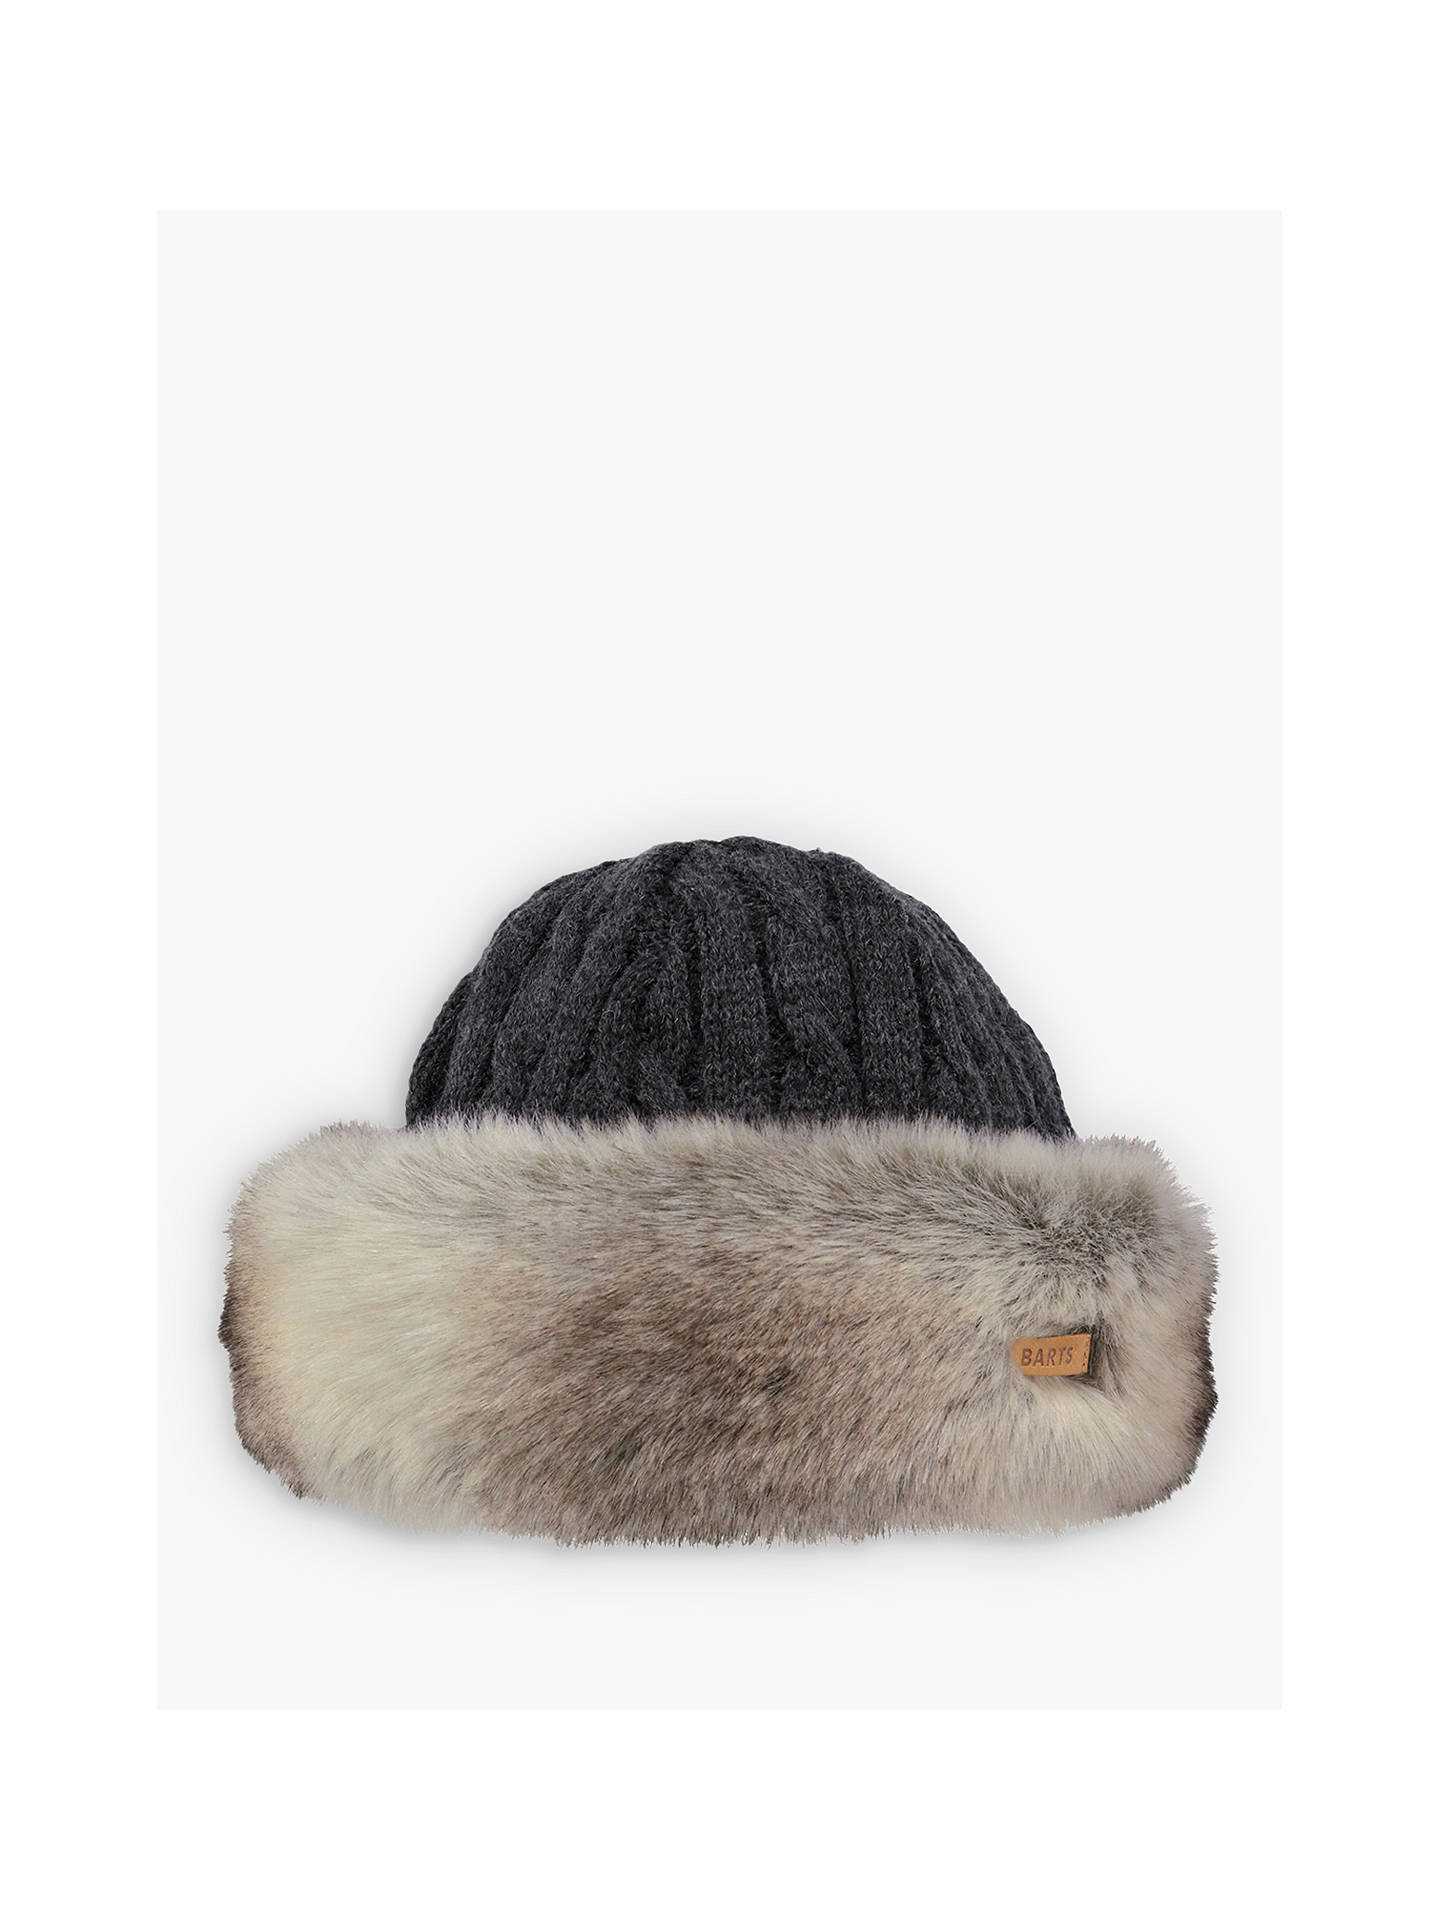 a0f96f7bd Barts Faux Fur Cable Bandhat, One Size, Multi